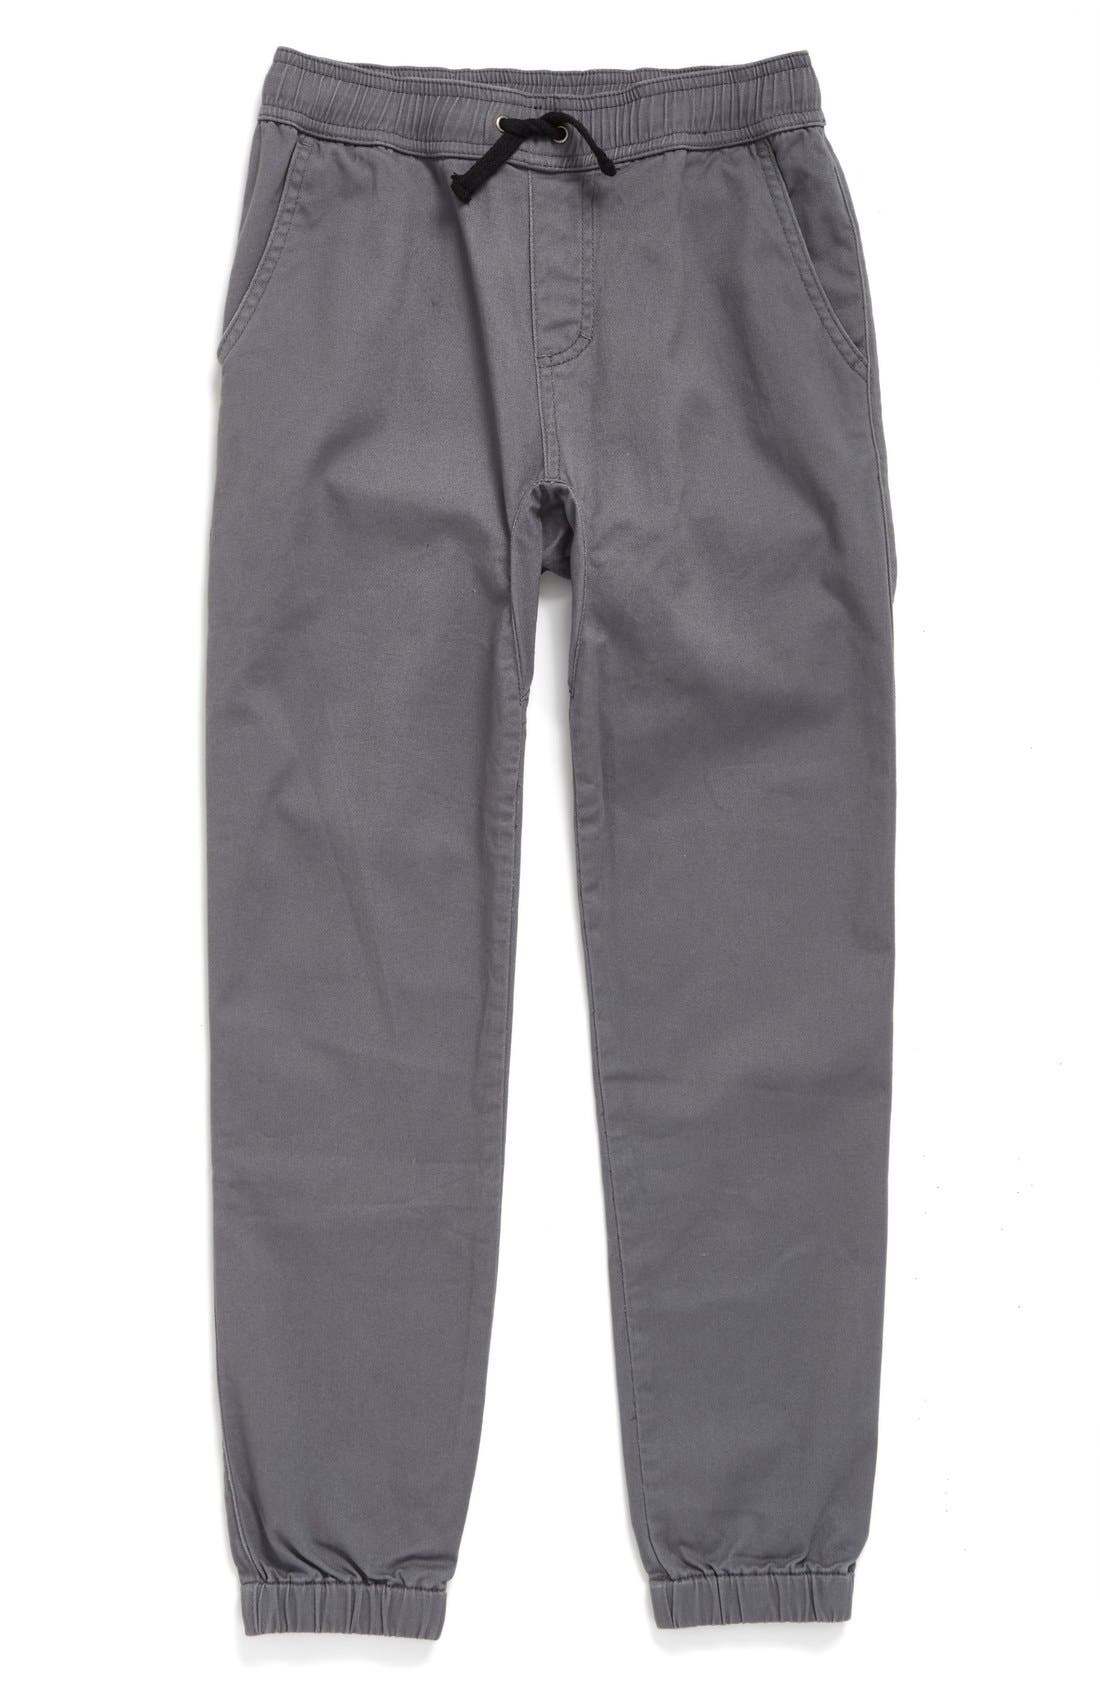 Tucker + Tate Woven Jogger Pants (Toddler Boys, Little Boys & Big Boys)